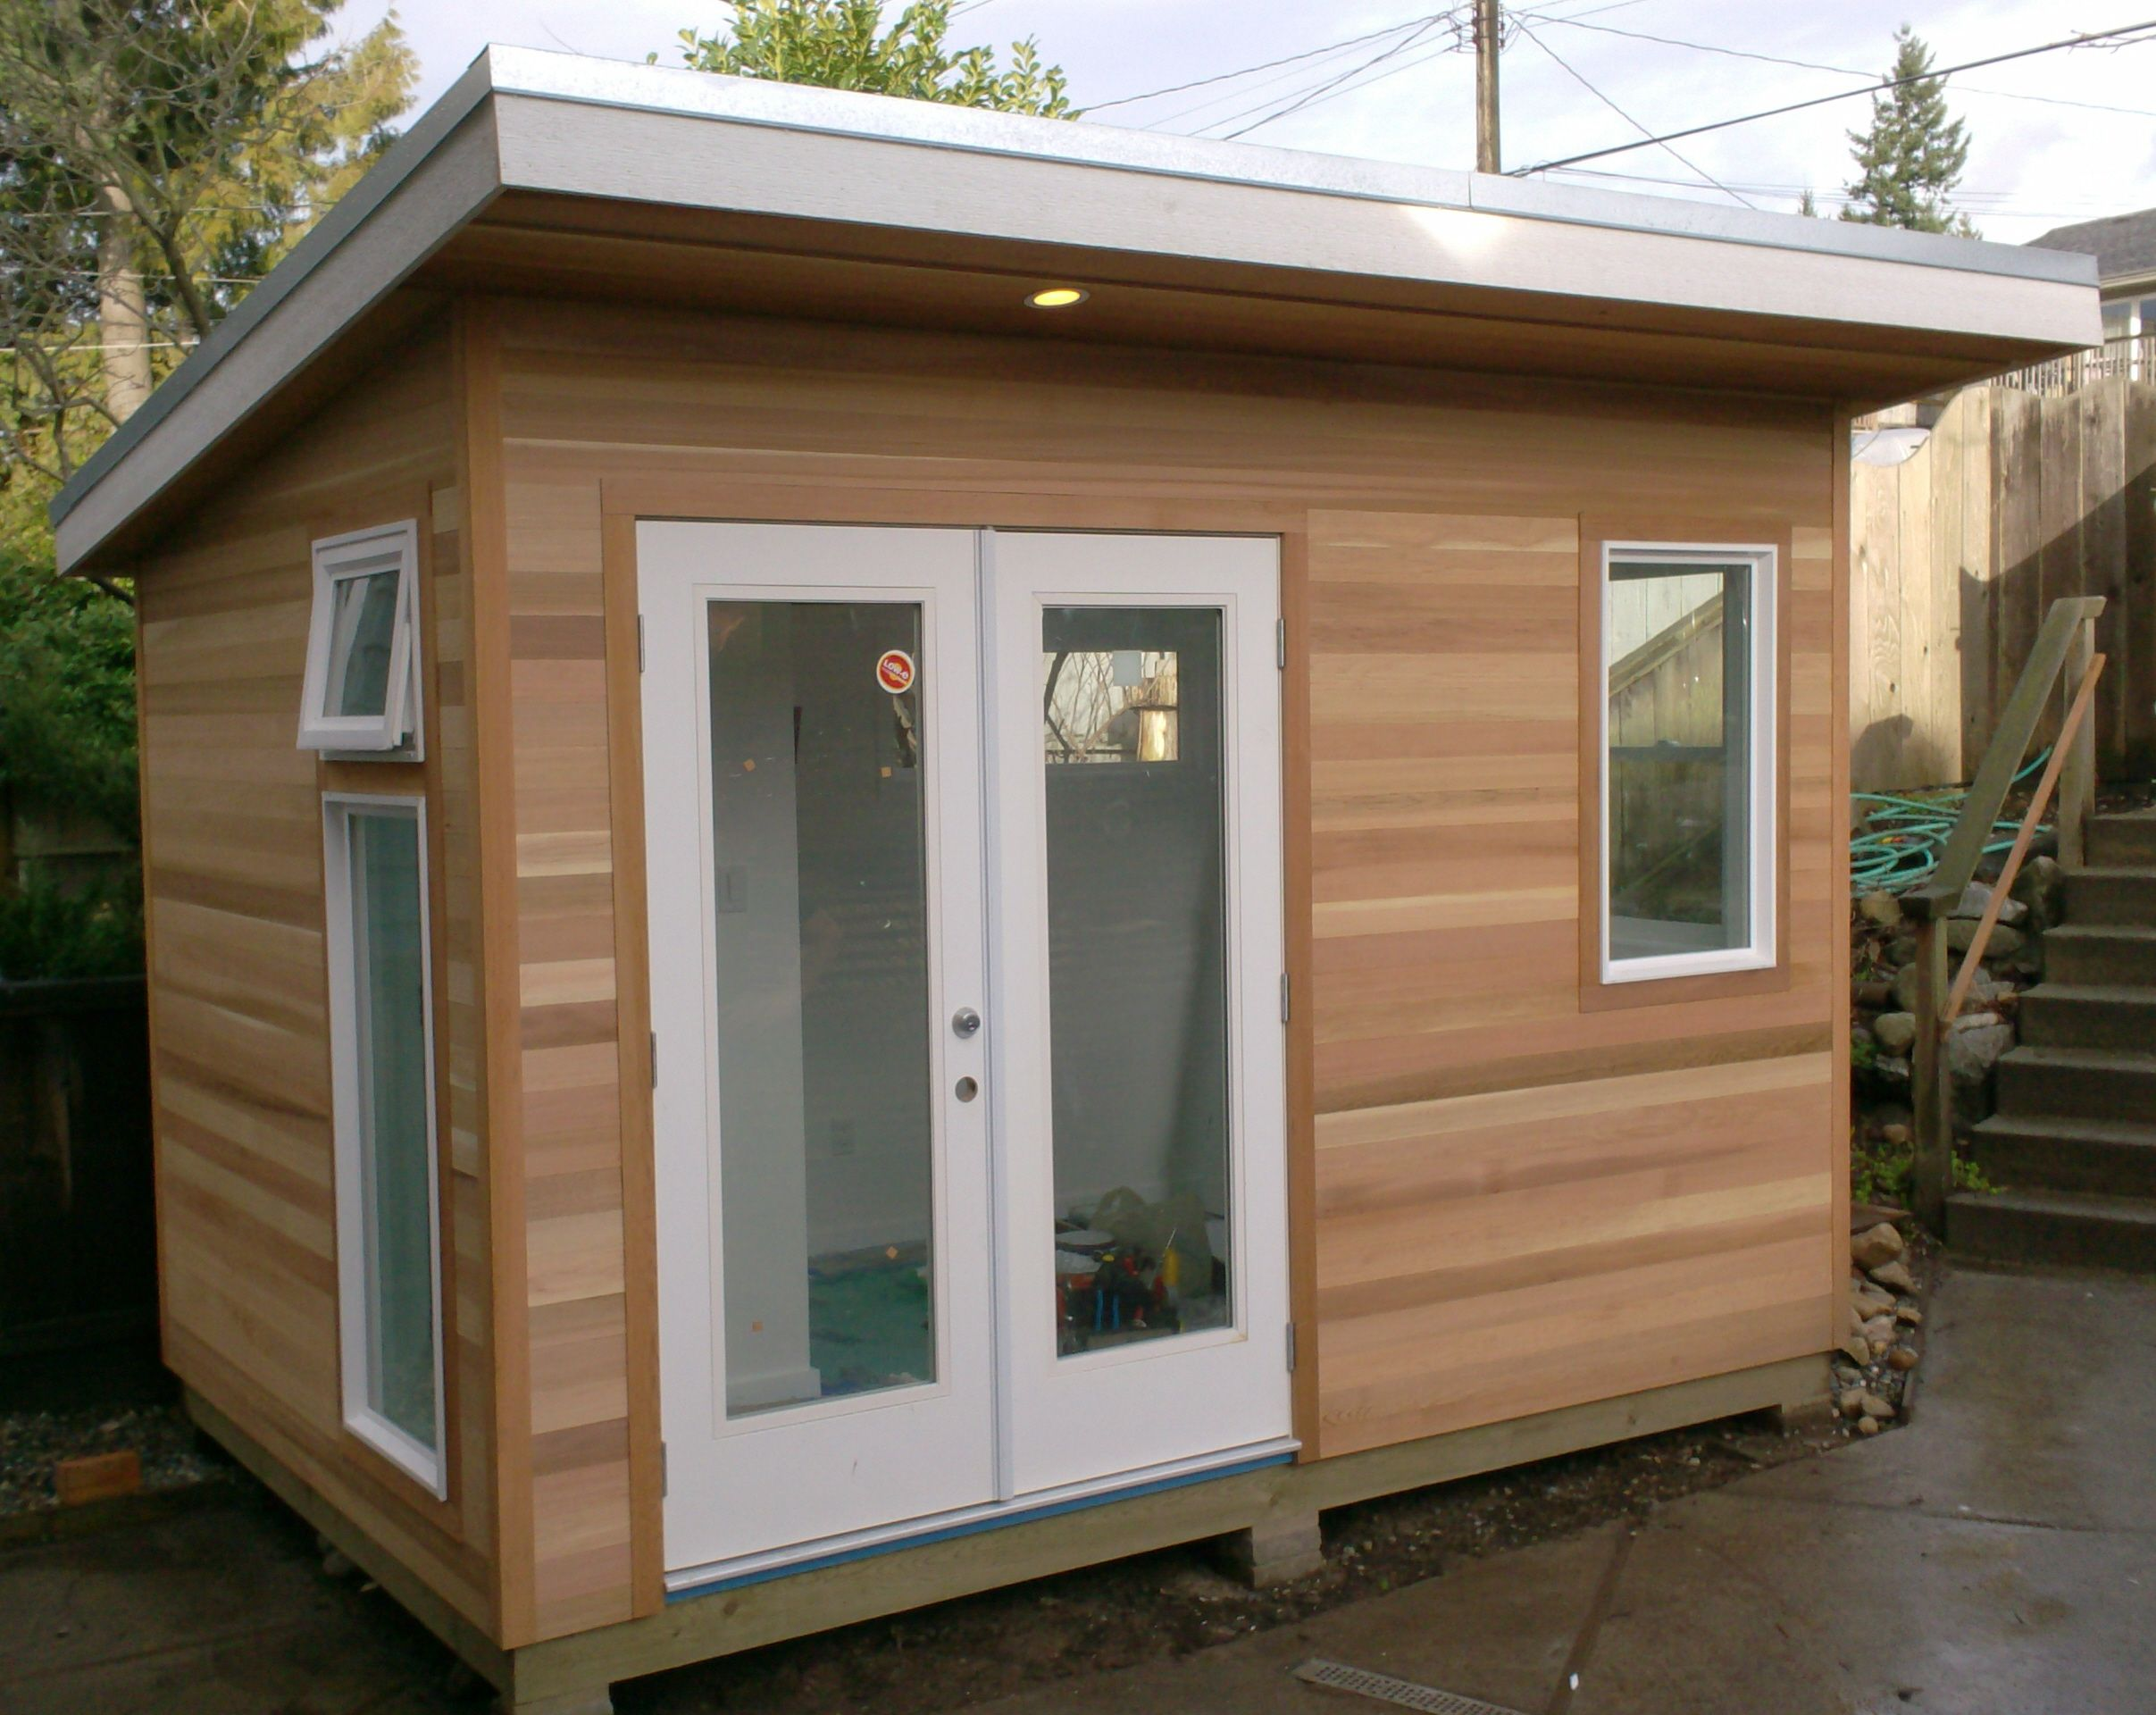 Sheds Studios Homes Vancouver Surrey Coquitlam Shed To